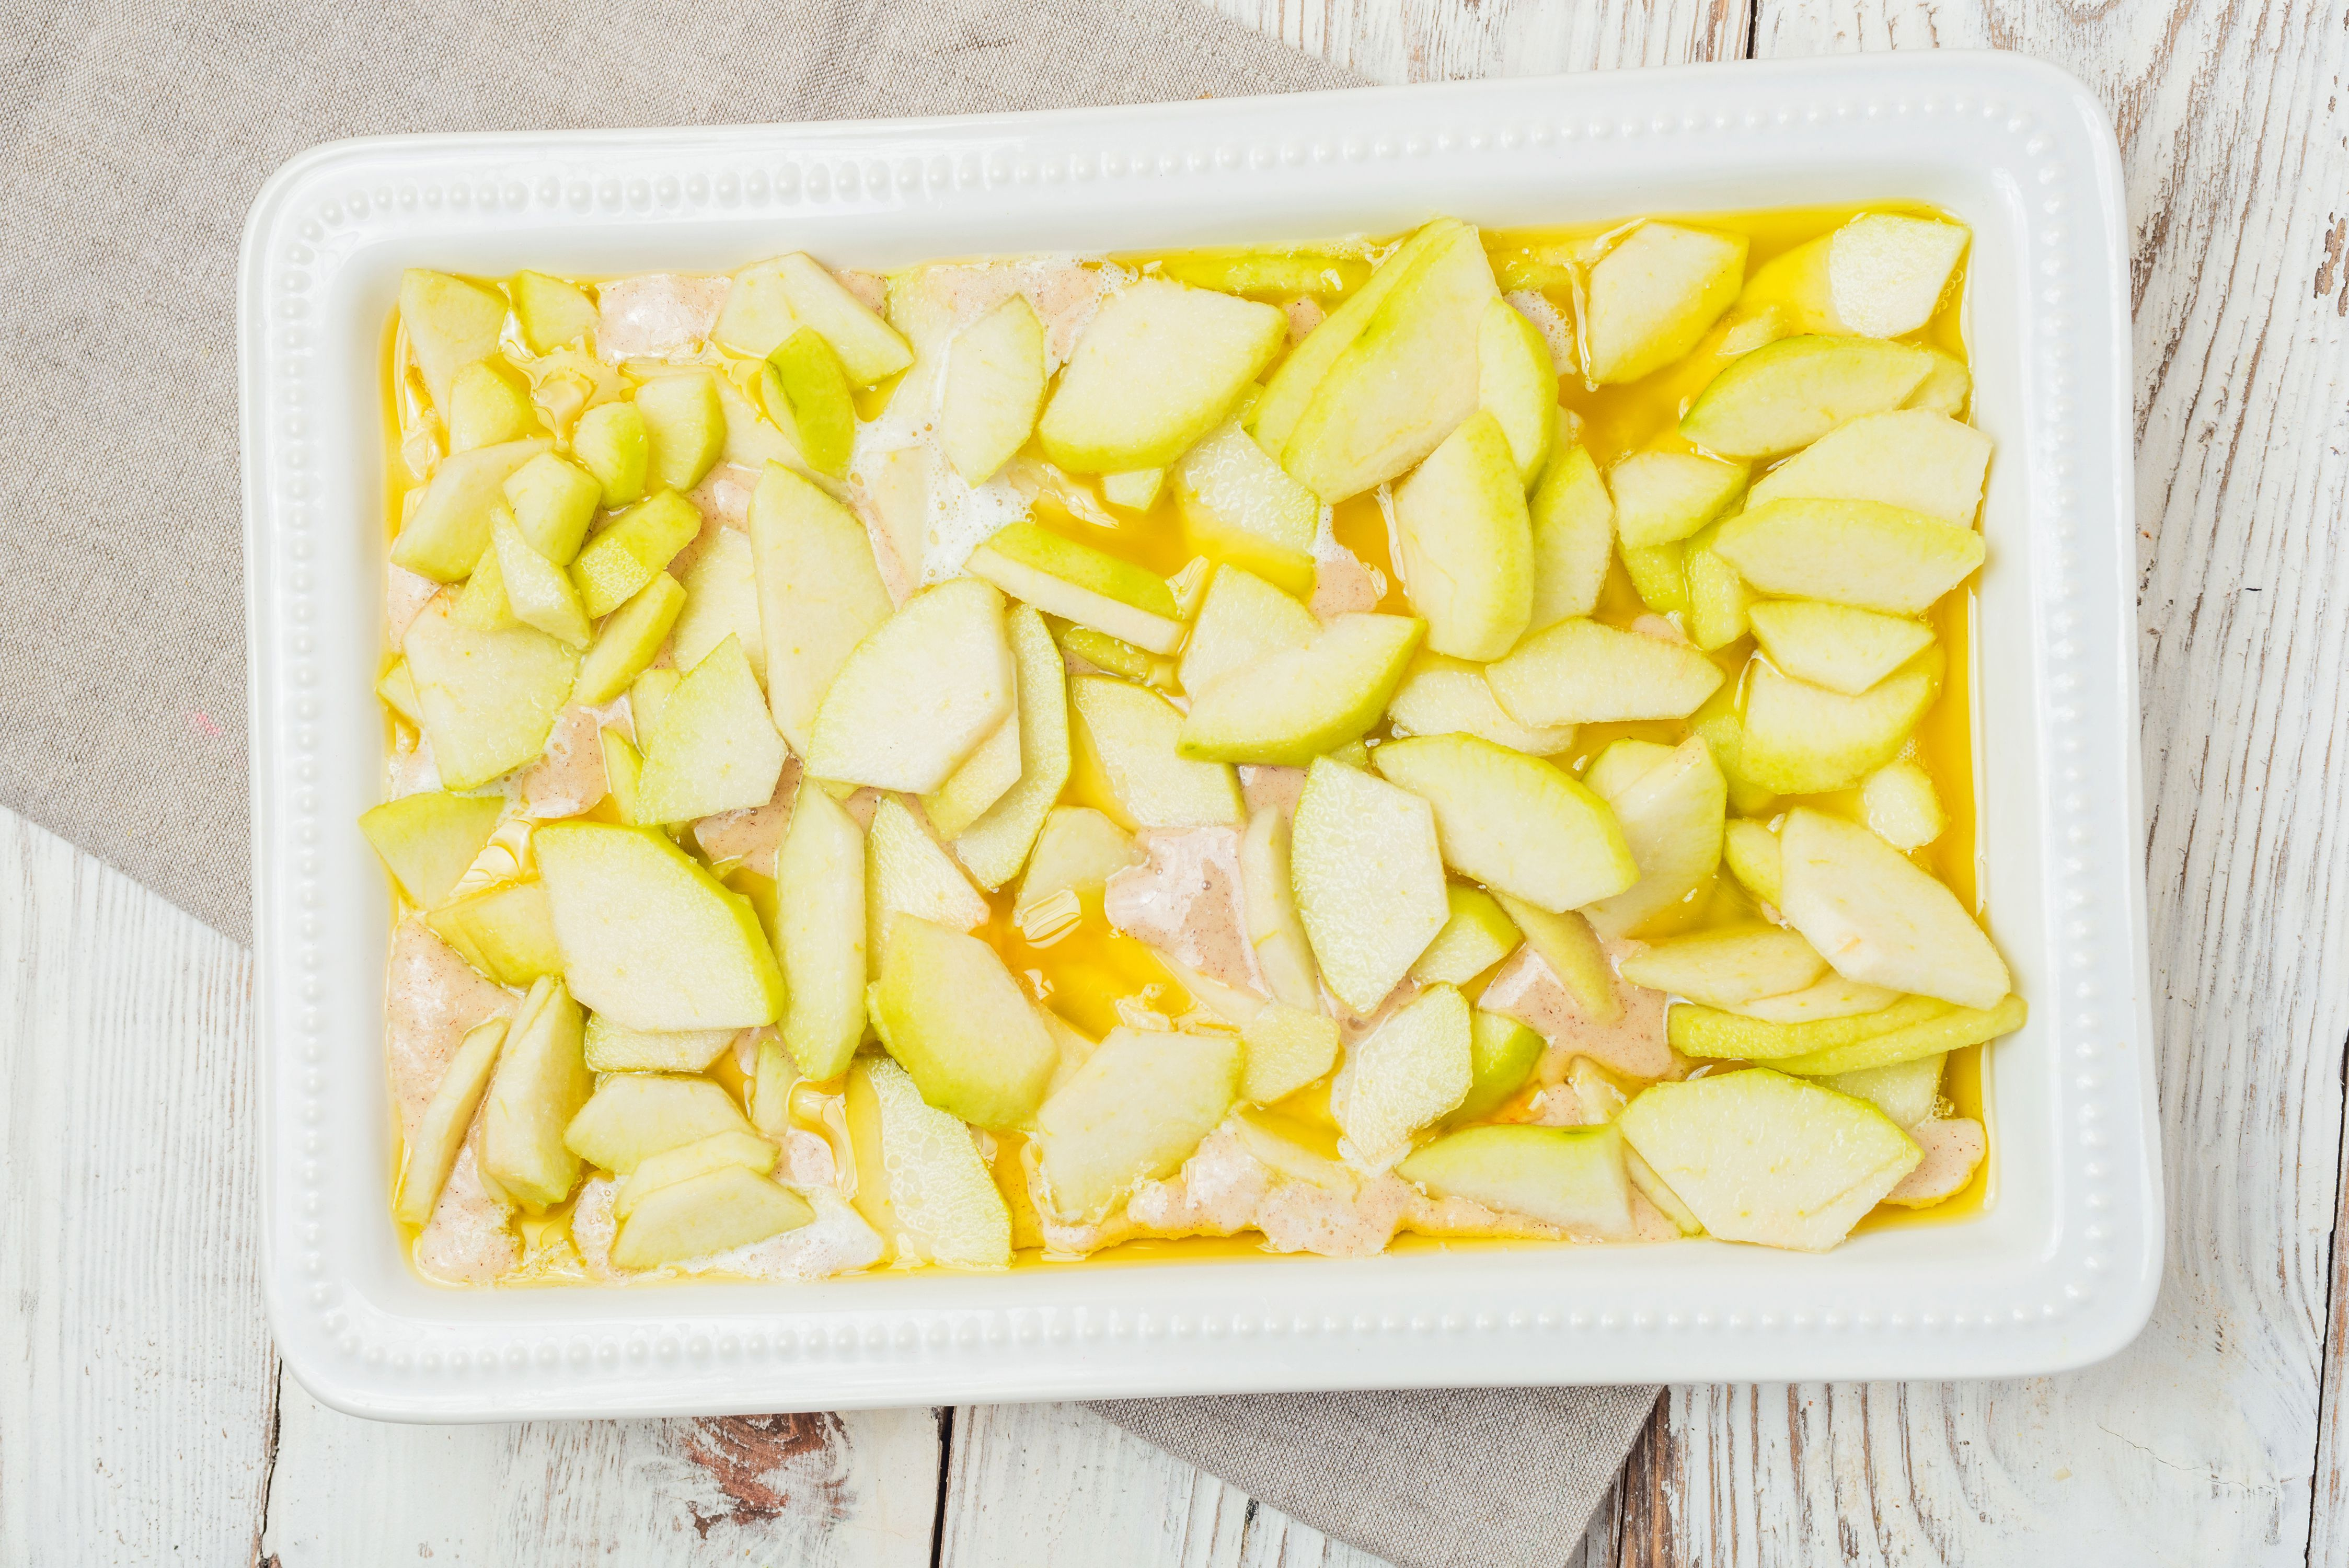 Pear cobbler in the dish before baking